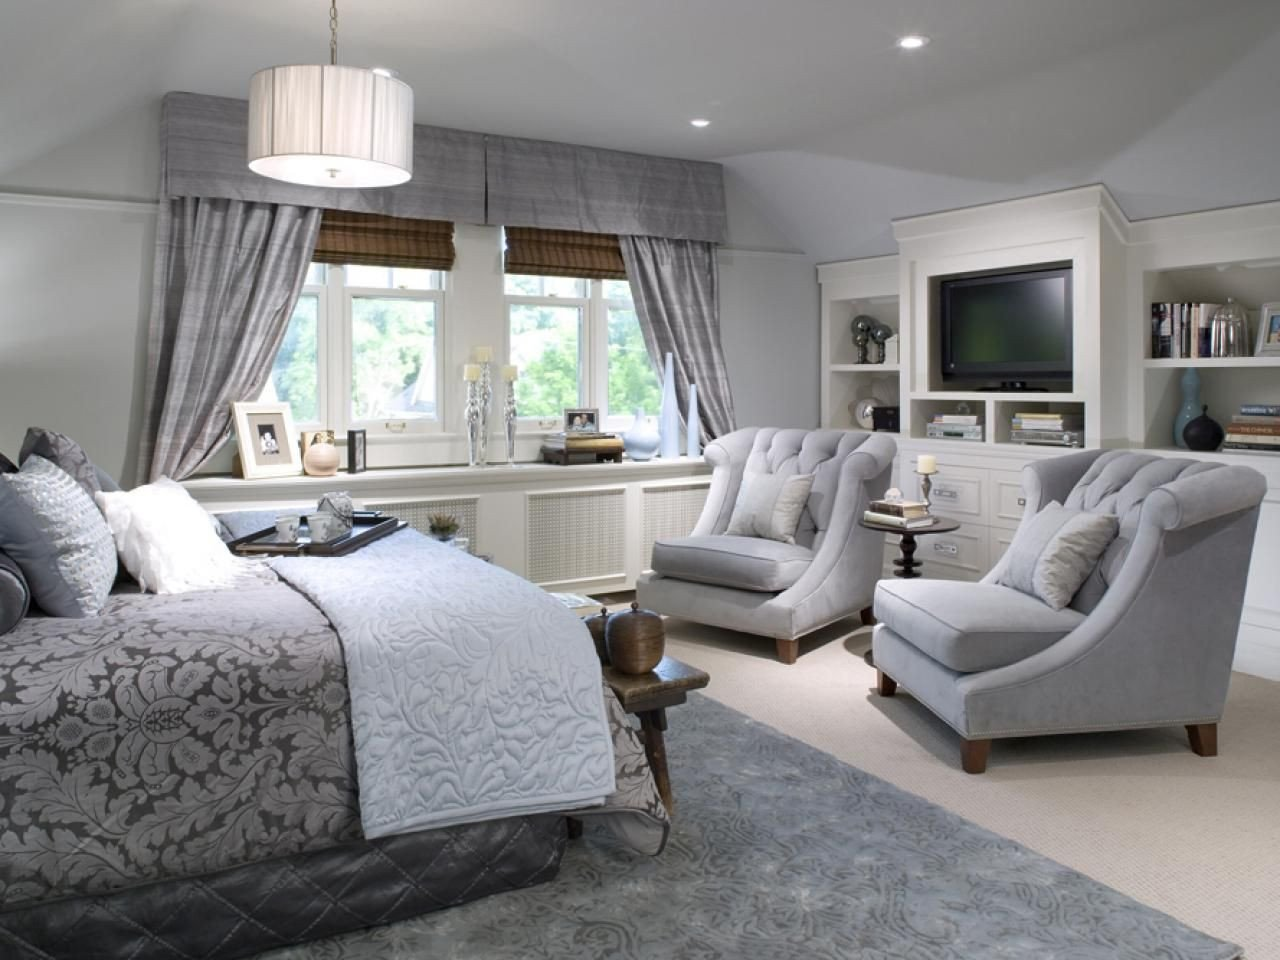 Tv Height In Bedroom Fresh I Like This Layout Put the Tv Against the Large Wall and A